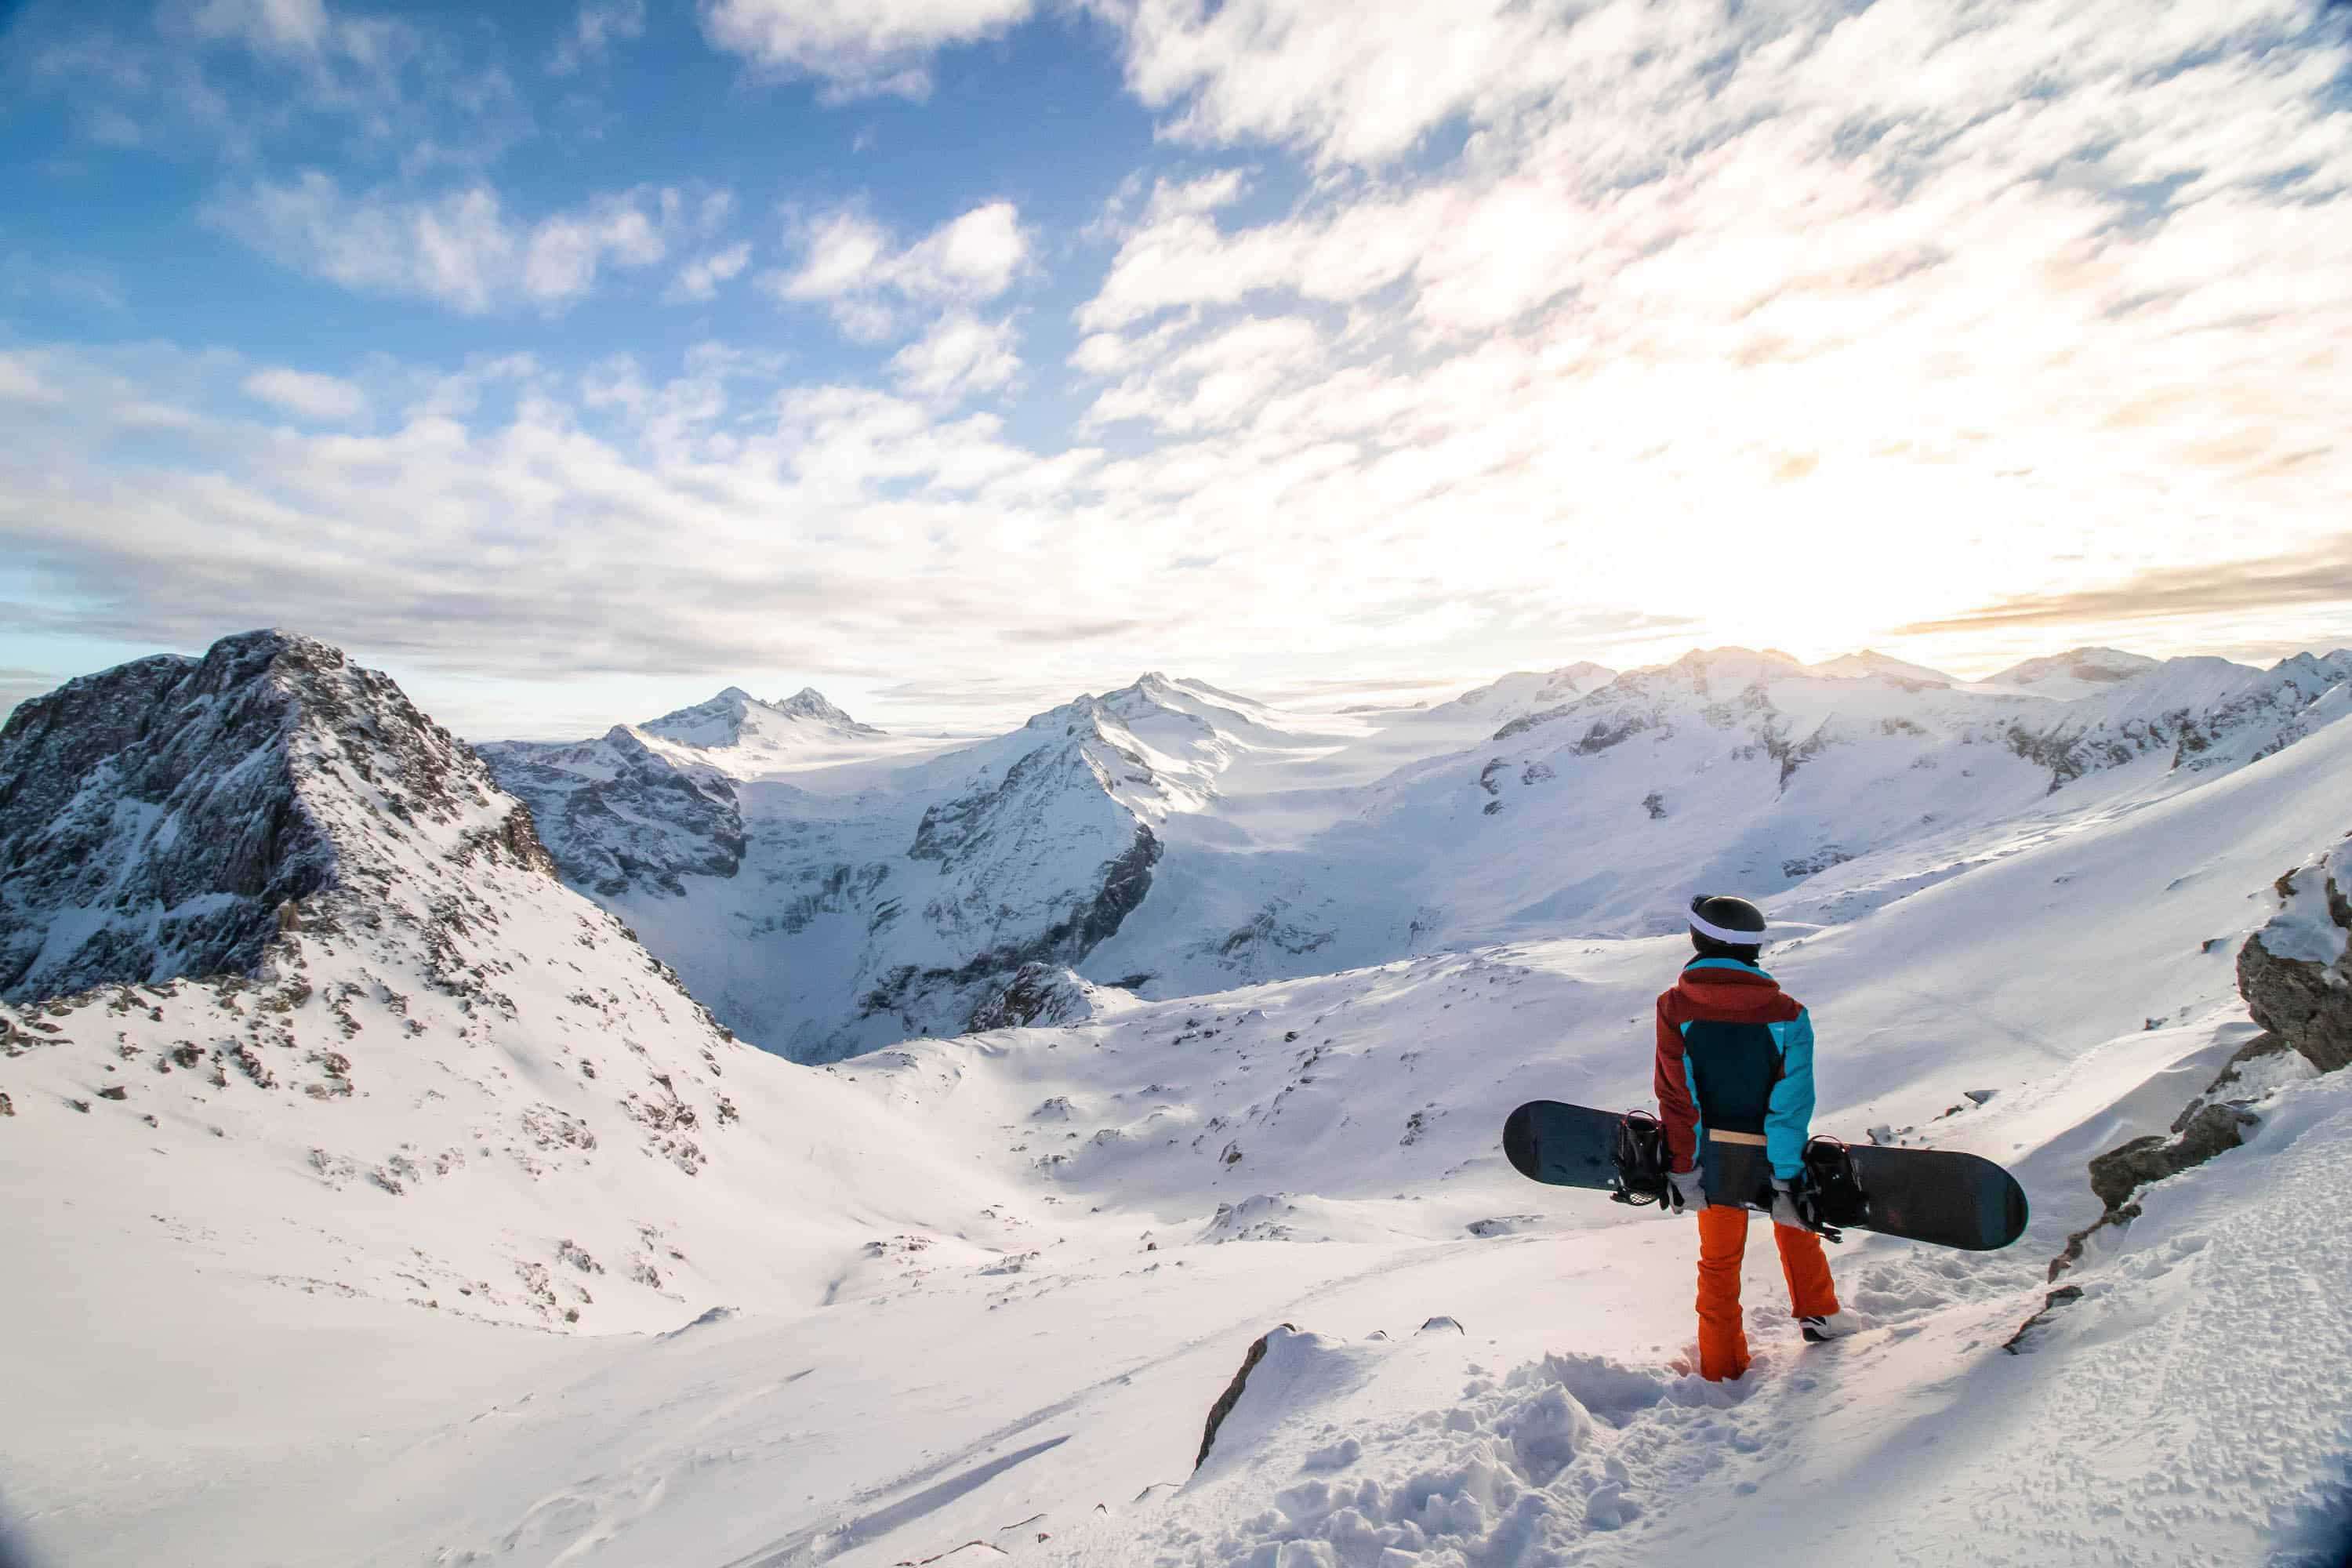 Winter skiing in Italy